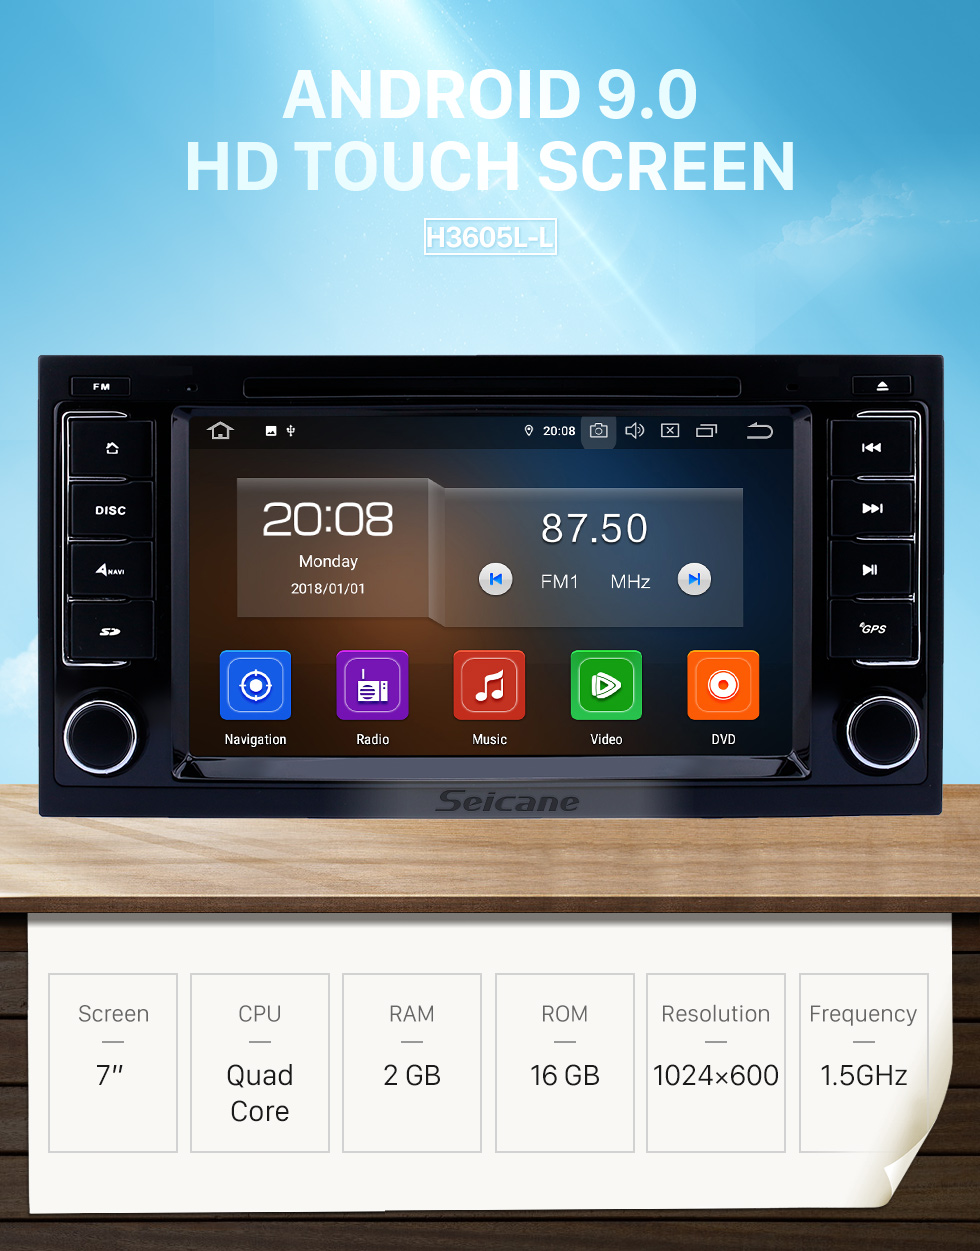 Seicane 7 inch Android 9.0 Touchscreen Radio for VW Volkswagen 2004-2011 Touareg 2009 T5 Multivan/Transporter with GPS Navigation Carplay Bluetooth support Backup camera